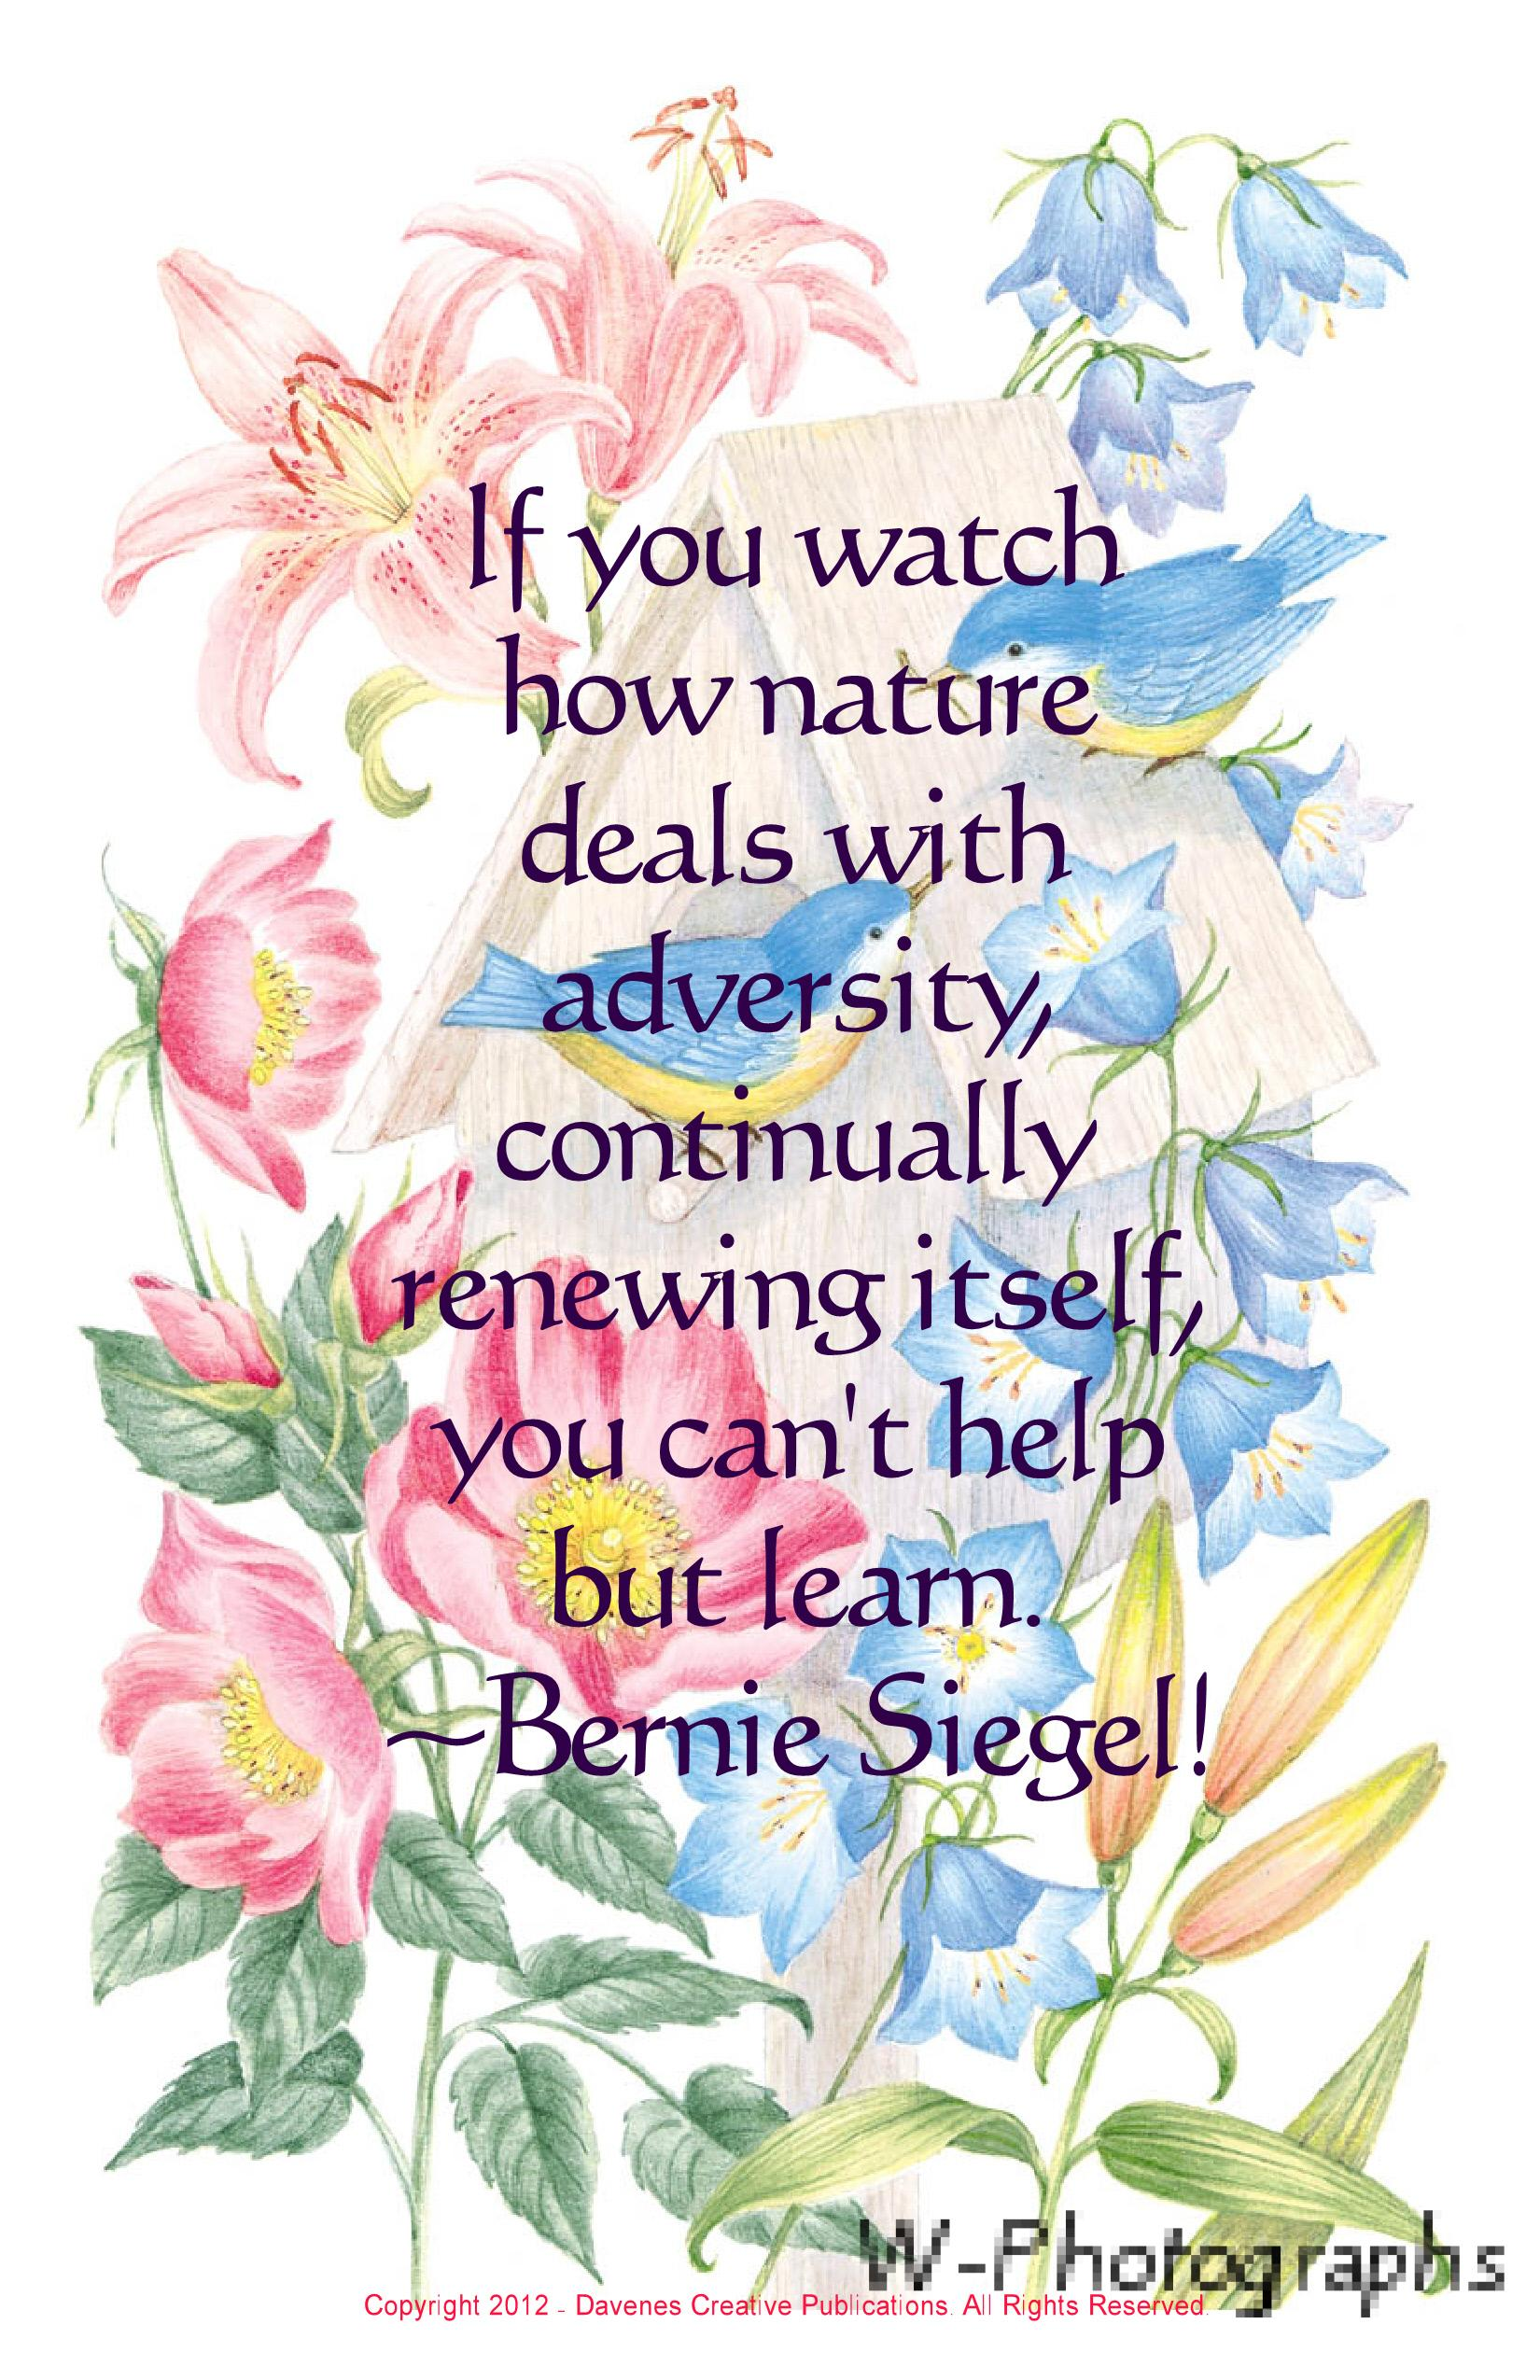 If You Watch How Nature Deals With Adversity, Continually Renewing Itself, You Can't Help But Learn. - Bernie Siegel